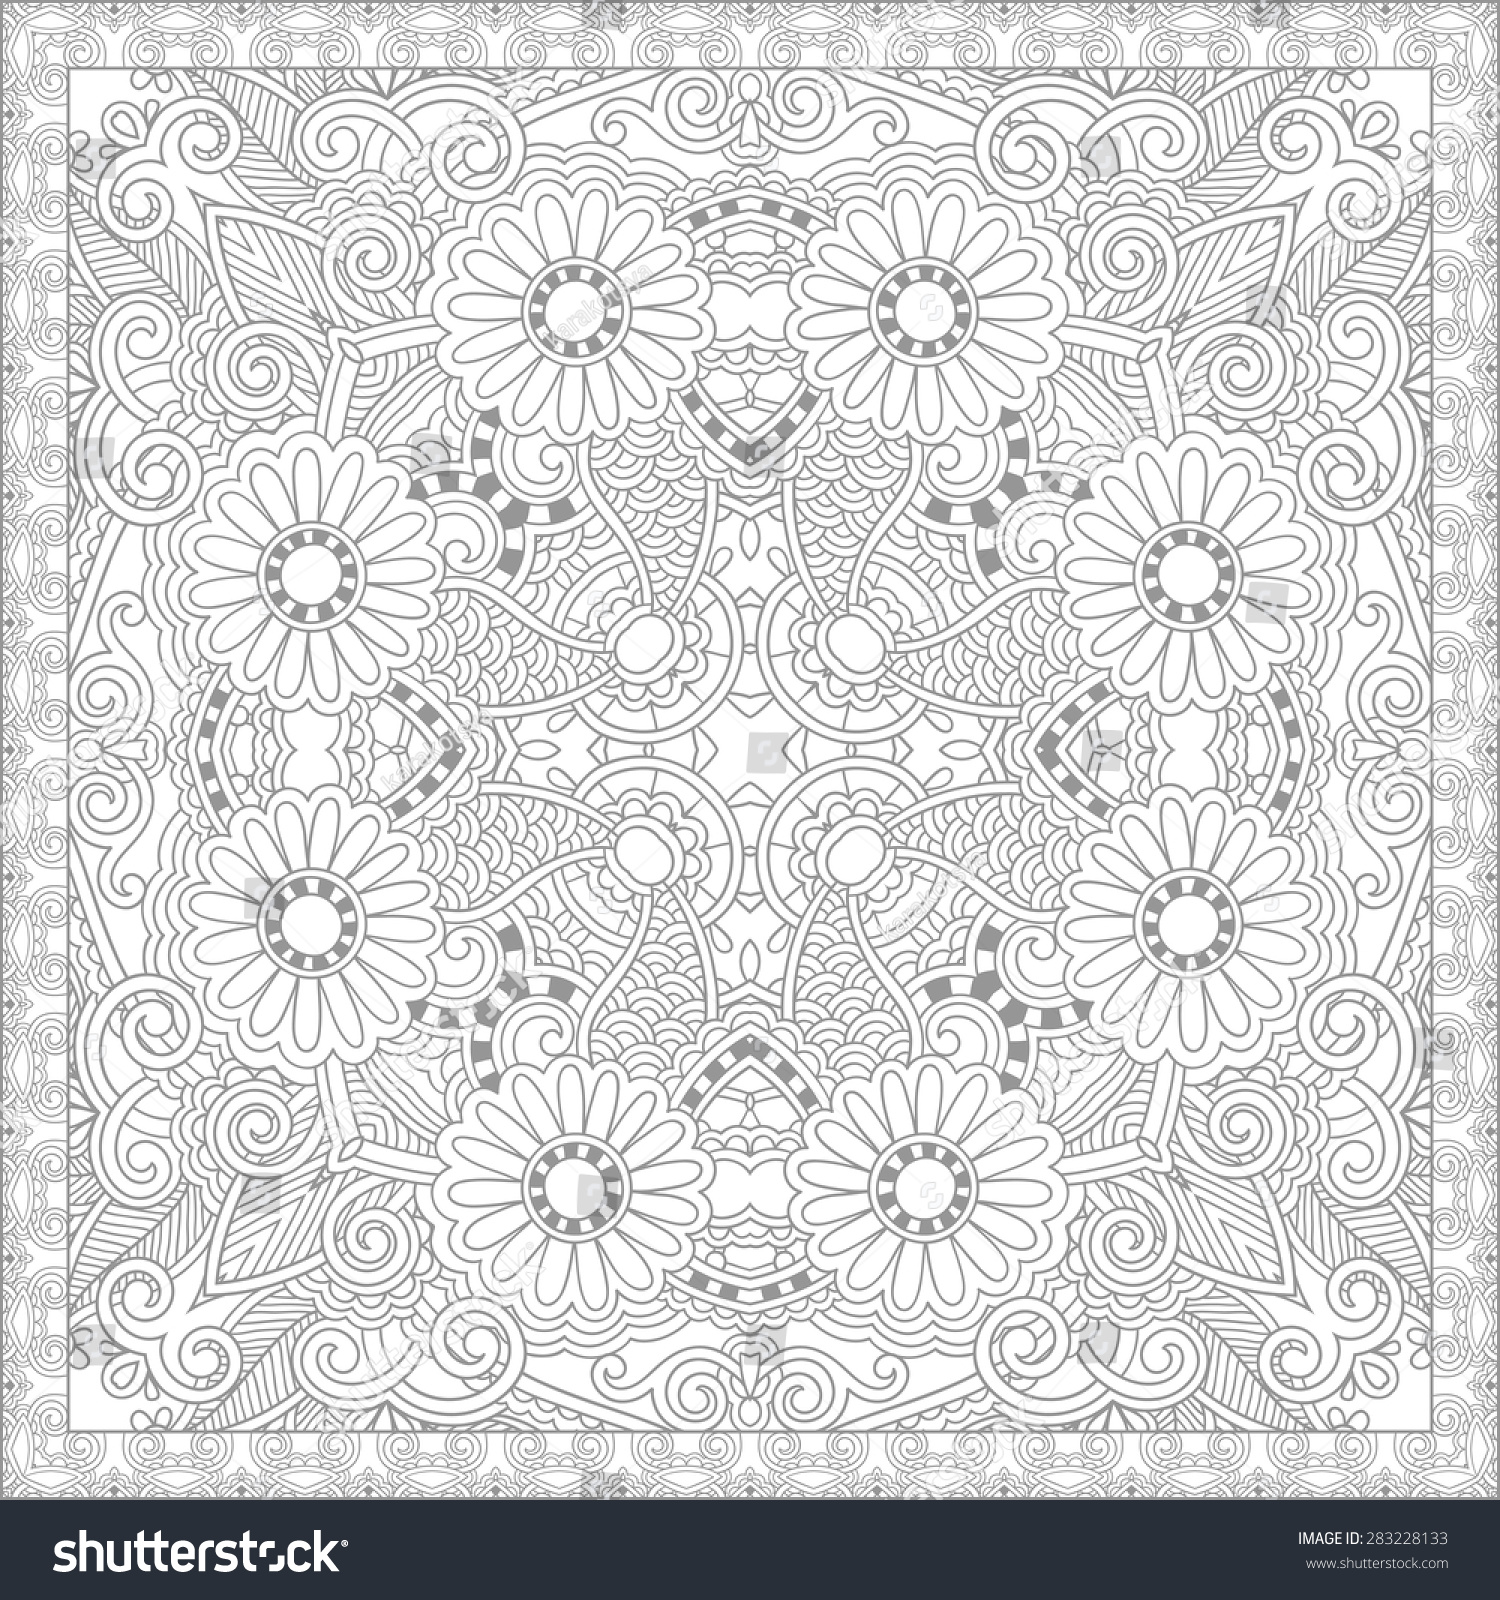 Unique Coloring Book Square Page Adults Stock Vector 283228133